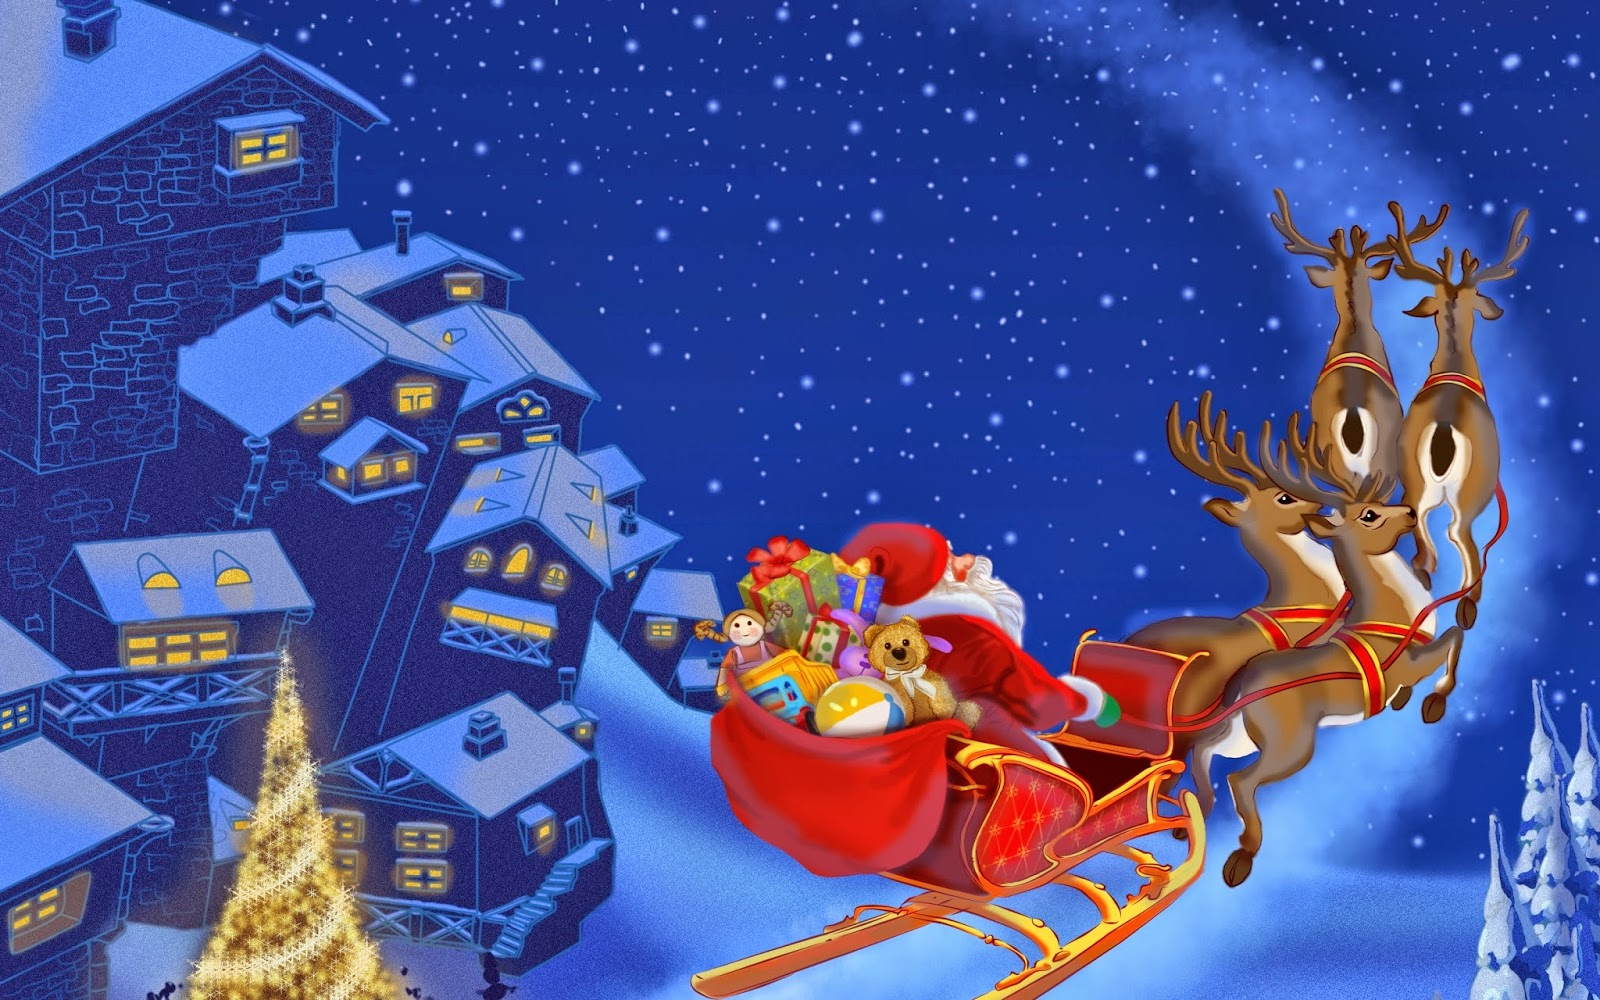 Santa-in-his-sleigh-flying-over-snow-city-cartoom-picture-image-for-kids.jpg